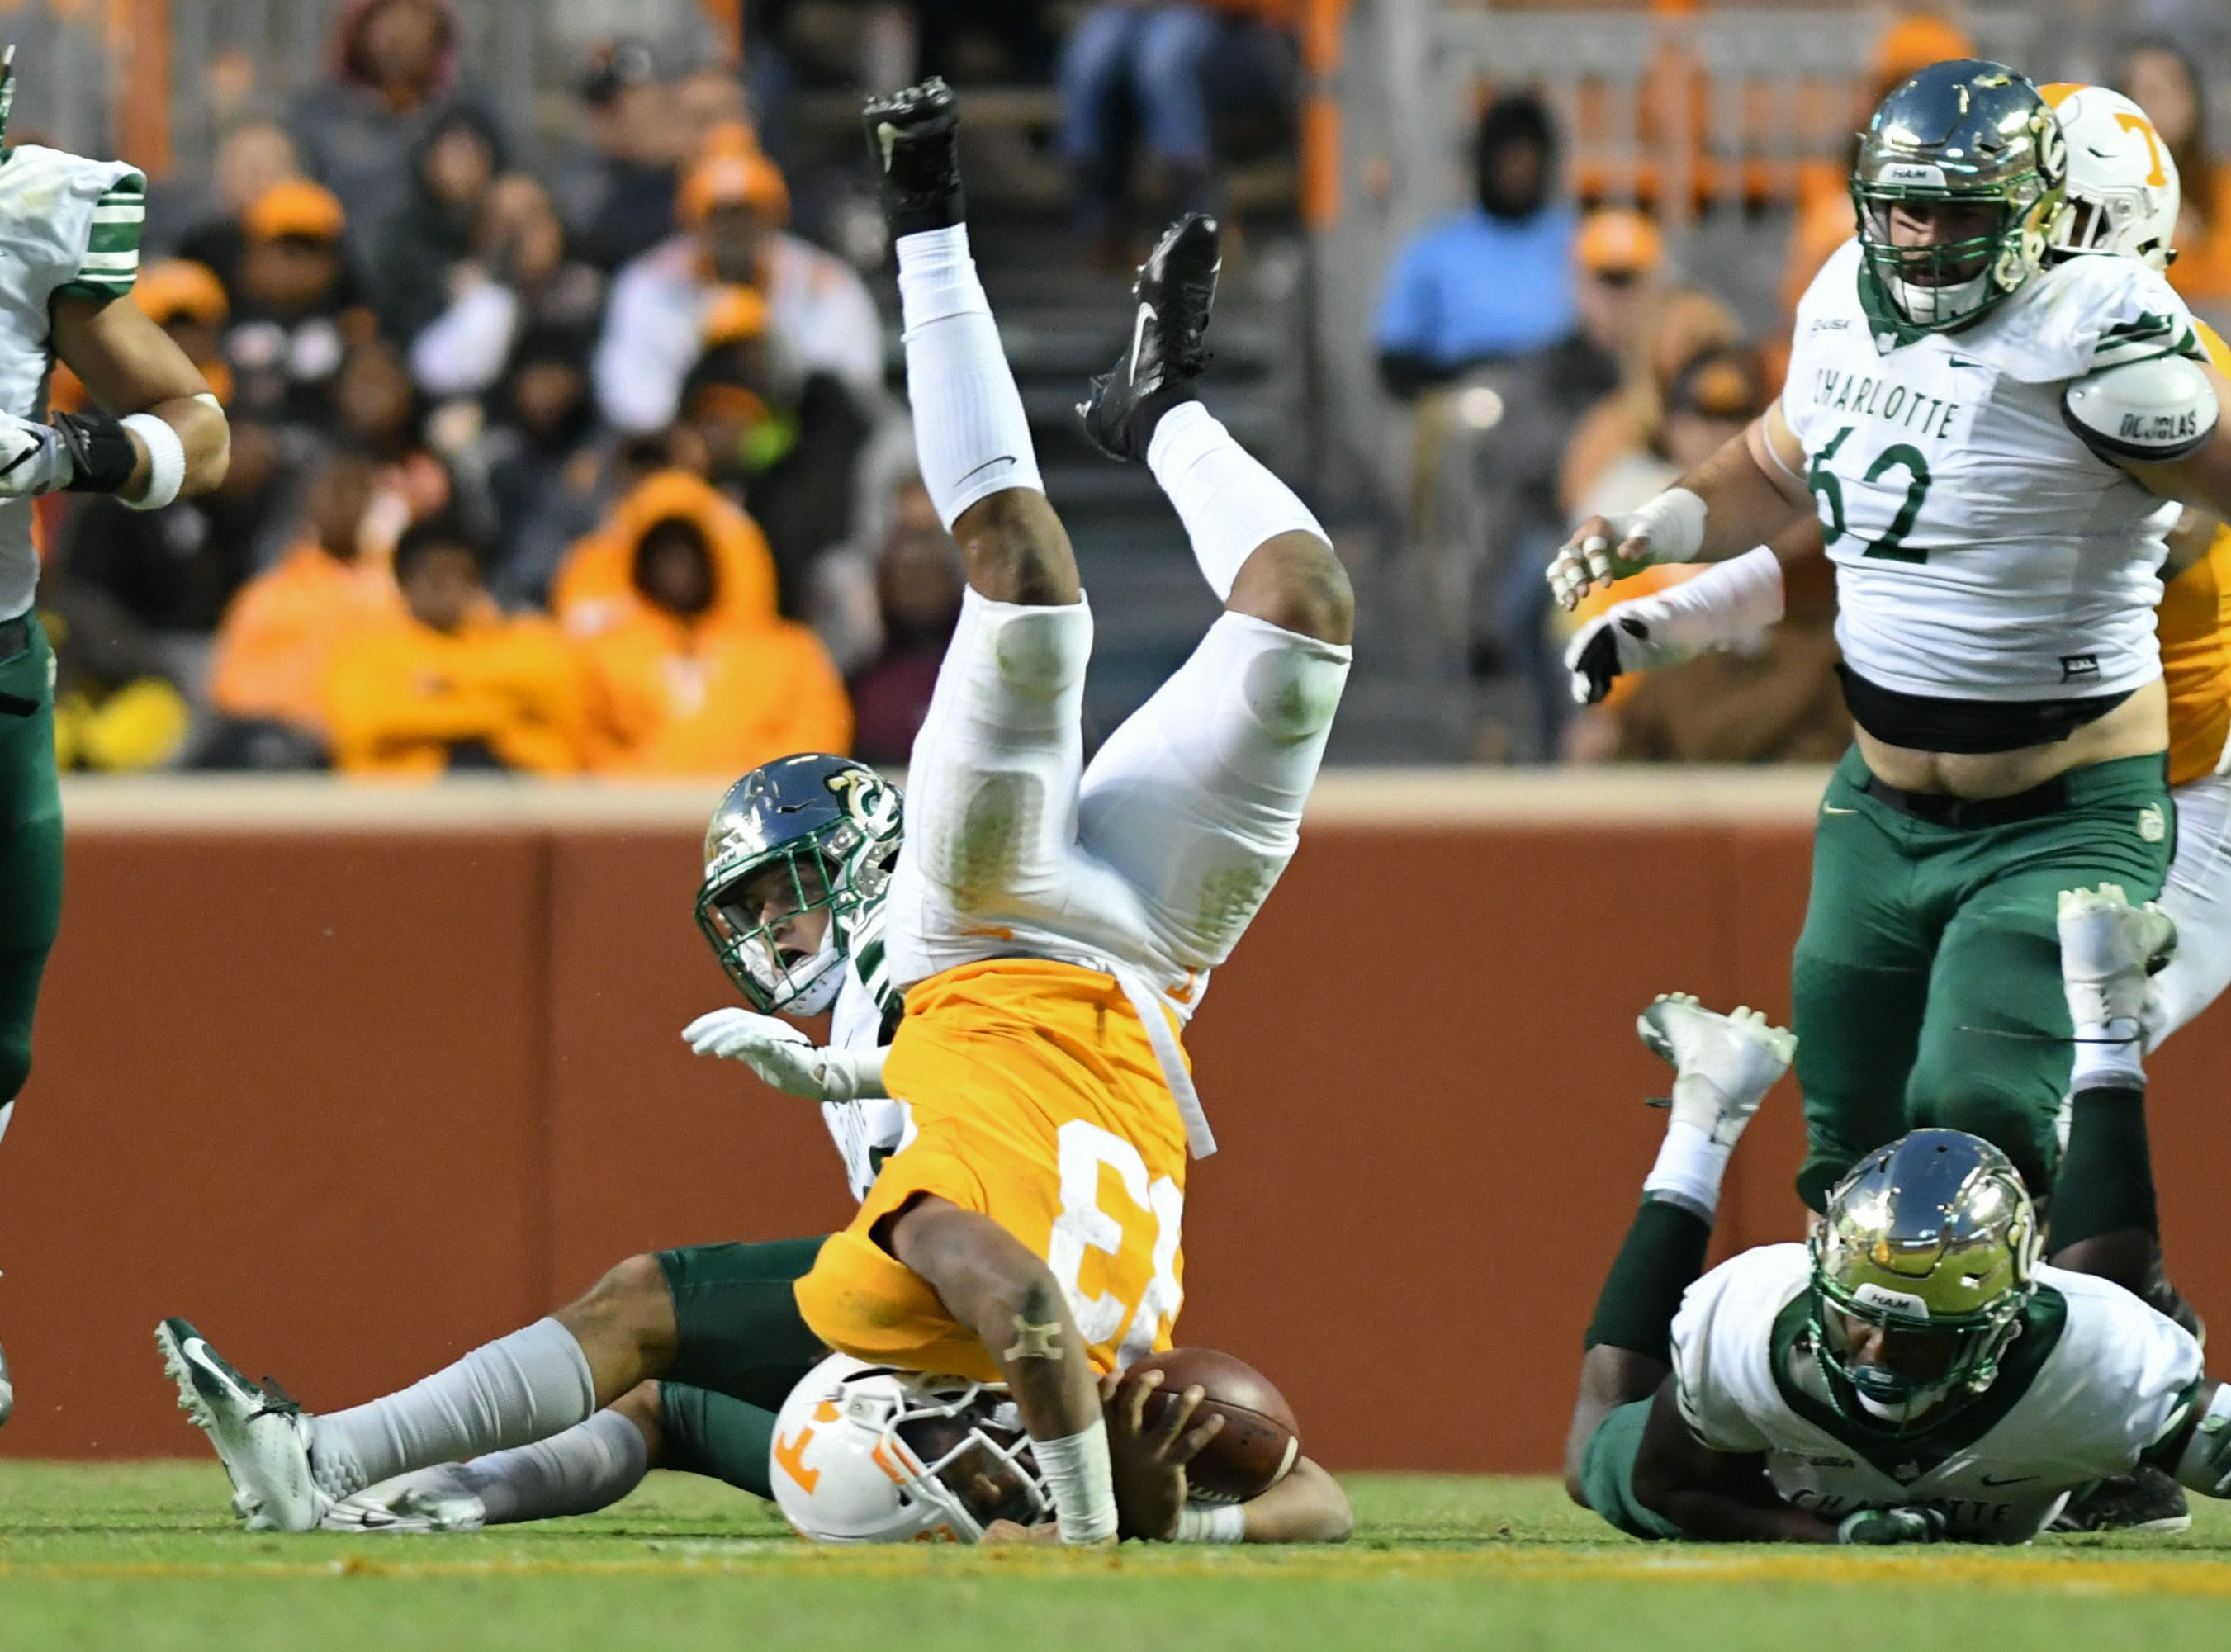 Tennessee Volunteers running back Jeremy Banks (33) is tackled by Charlotte 49ers defensive back Ben DeLuca (28) during the second half at Neyland Stadium.